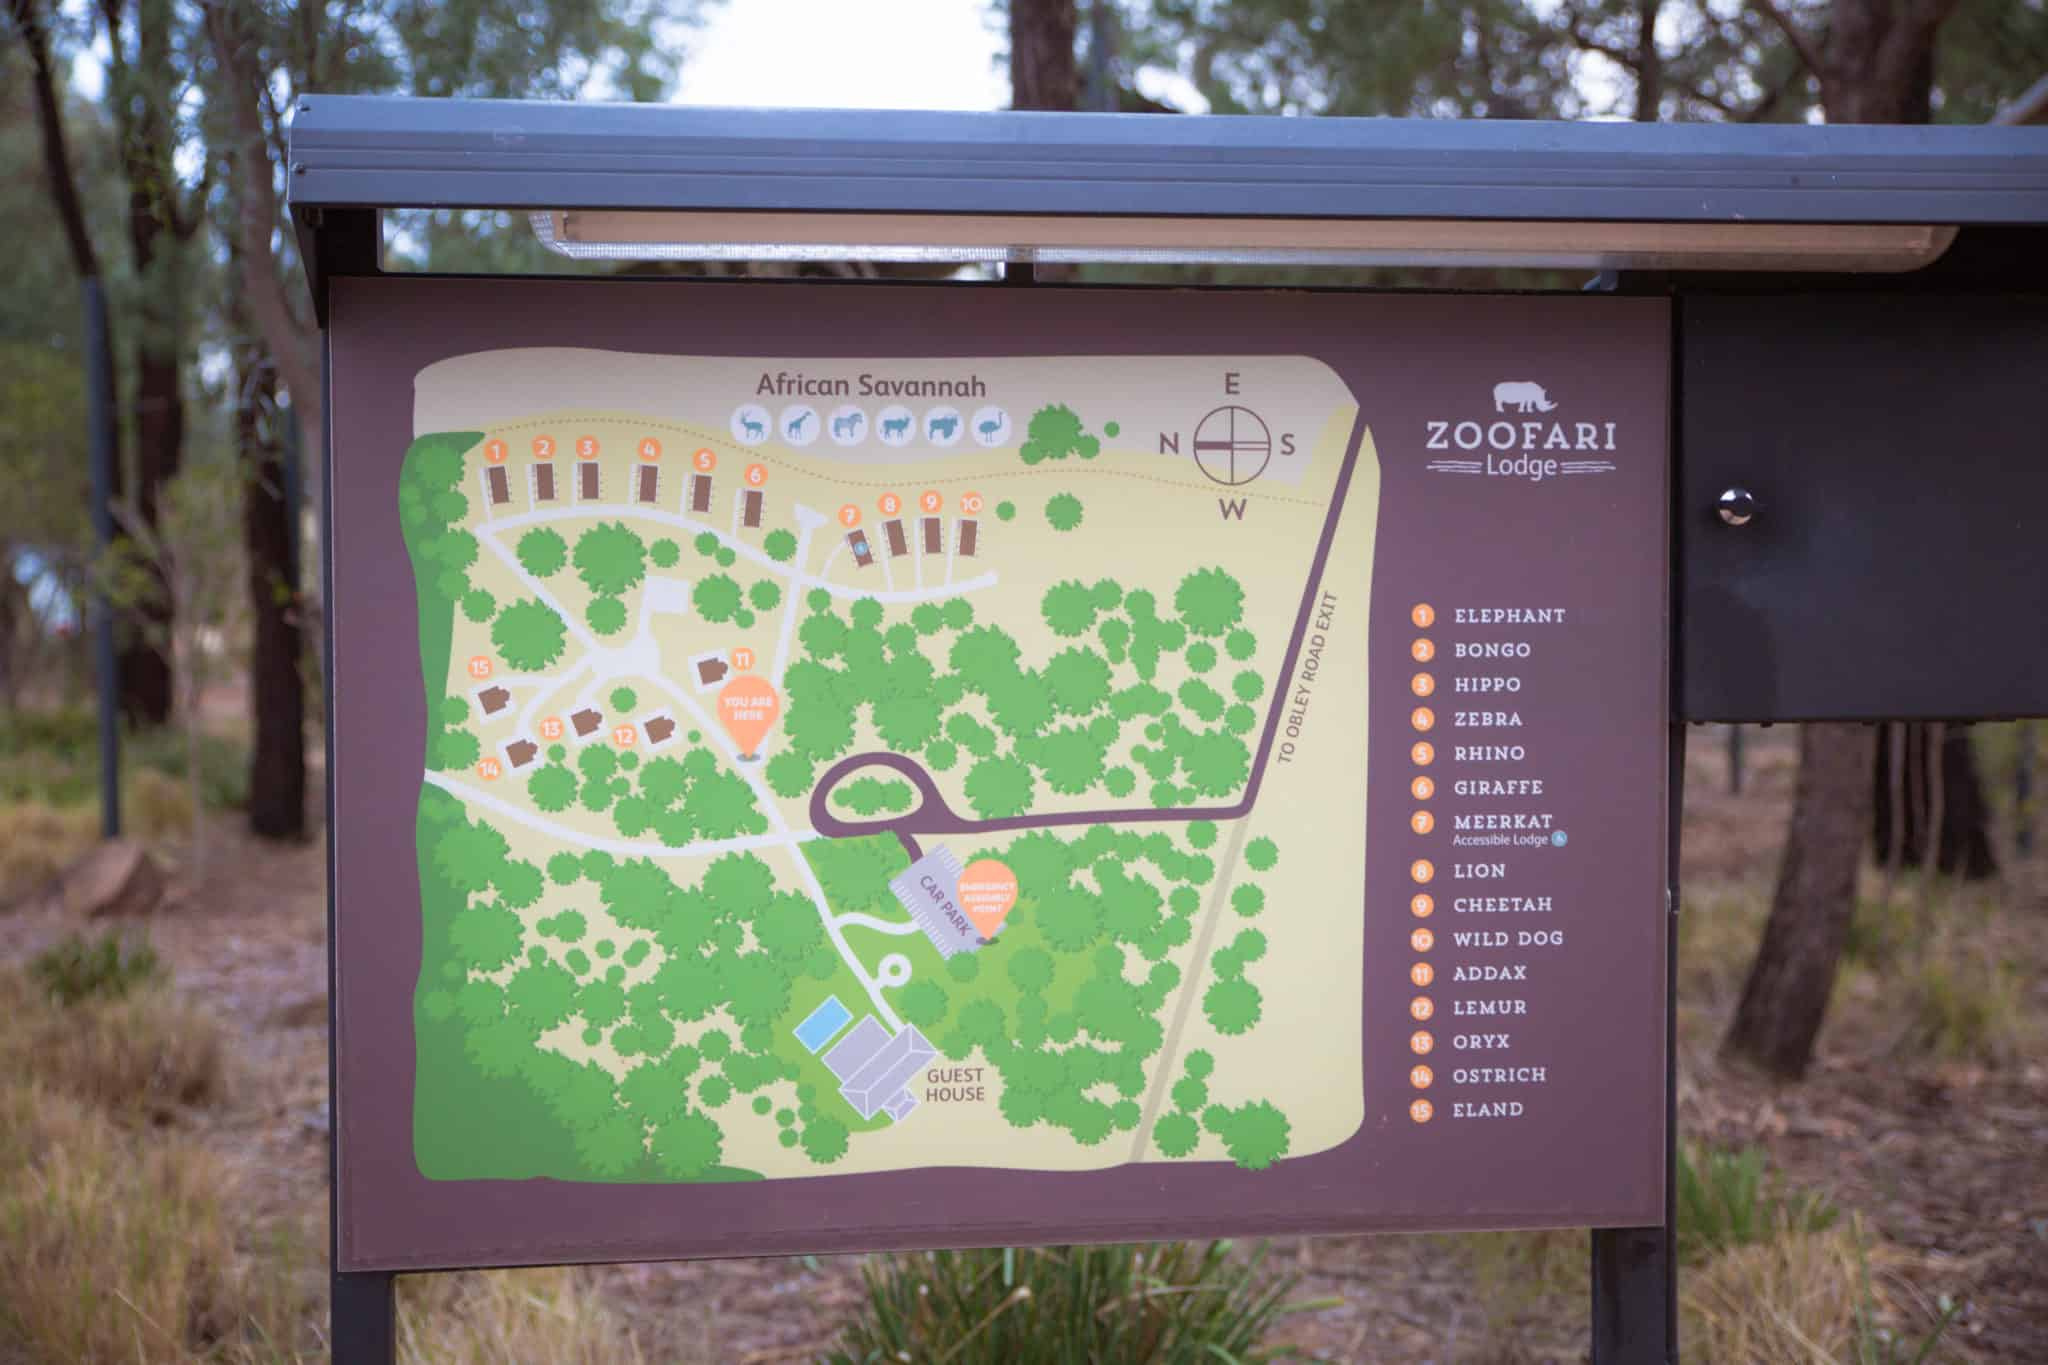 Travel With Meraki- Taronga Western Plains Zoo Dubbo Australia Zoofari Lodge